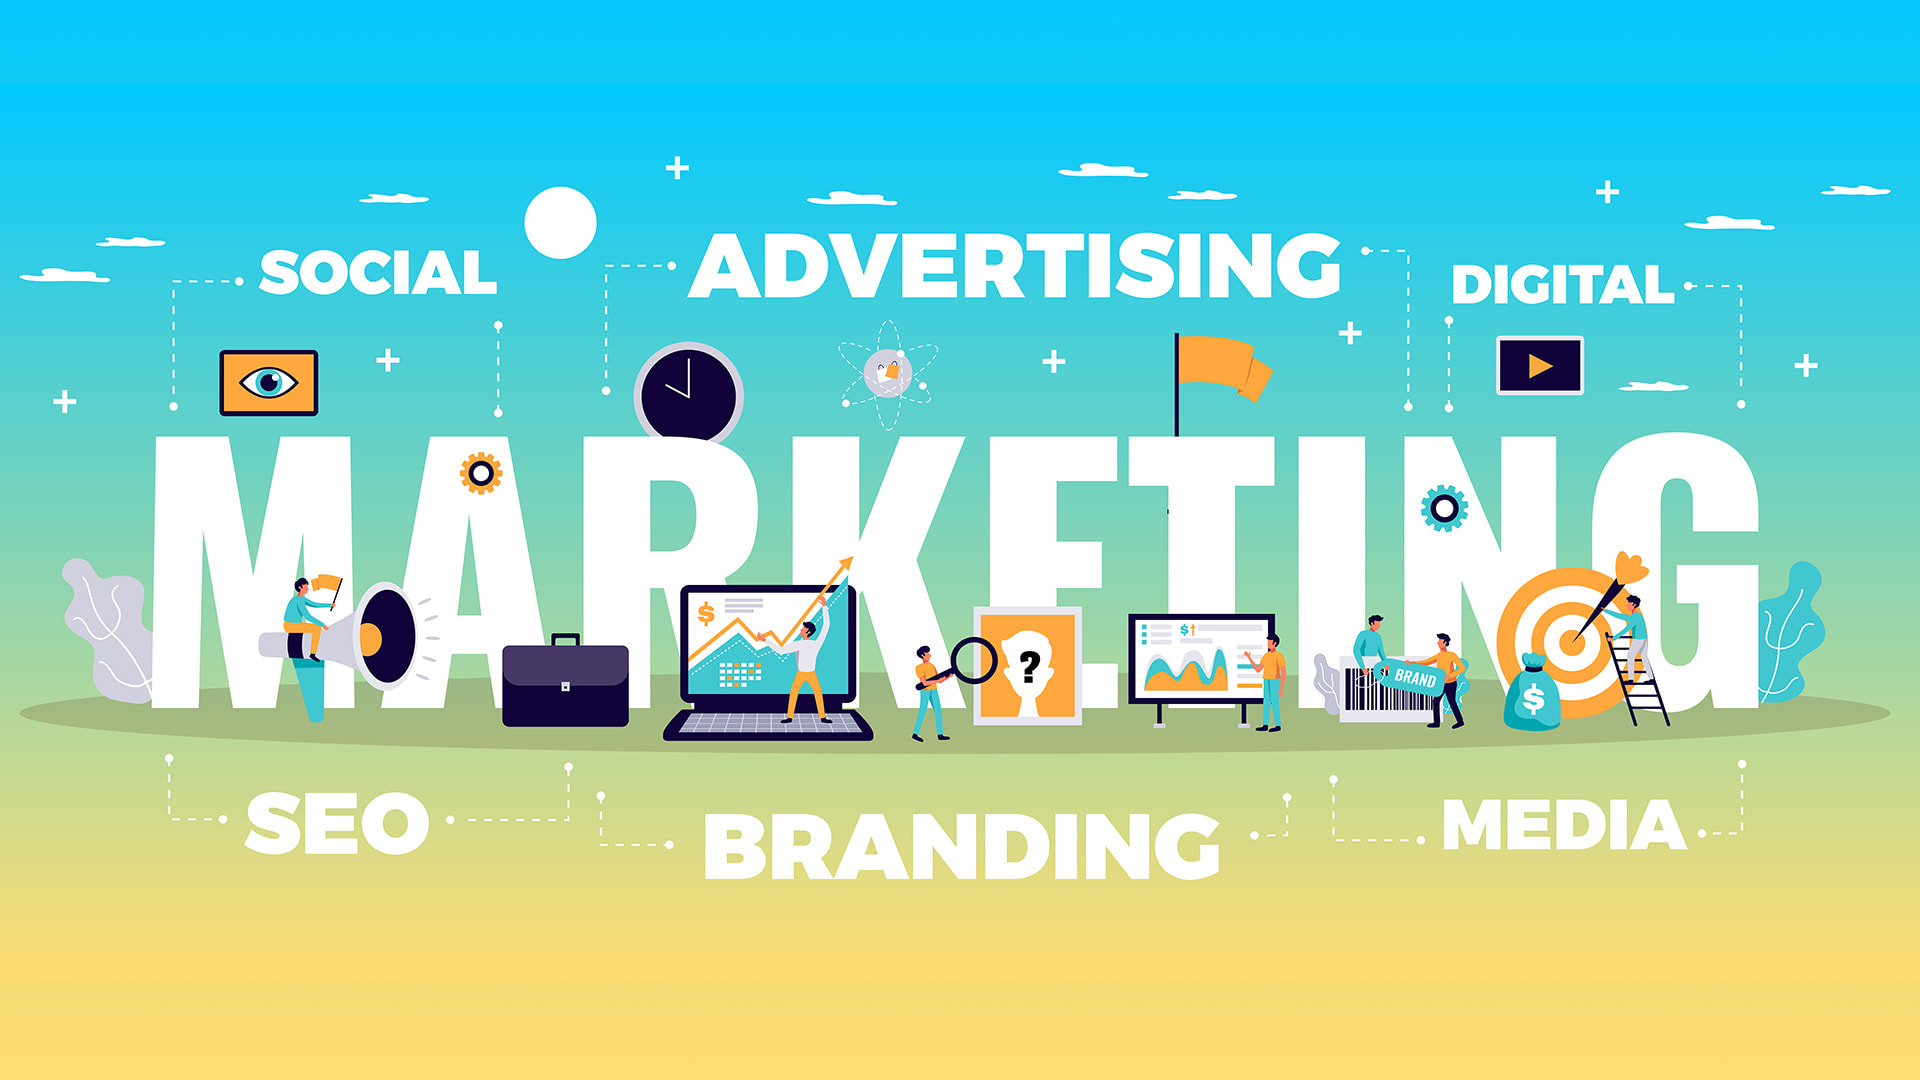 Once you have your marketing plan, INTELLIPLANS' advertising department can implement it, helping you promote your company or products on more than 200,000 outlets on TV, in print and online.